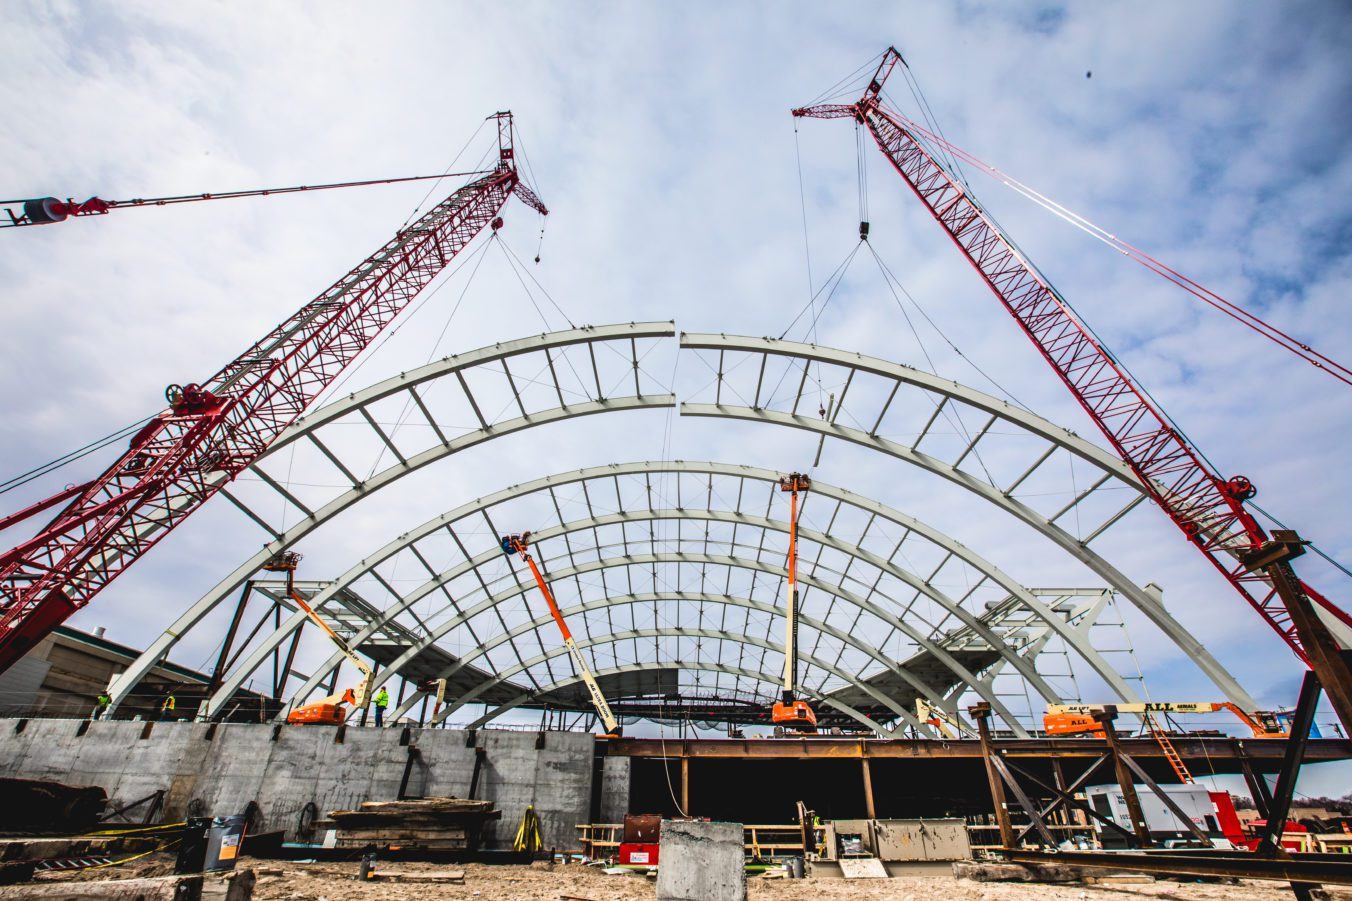 Epicenter of steel dome being lifted by cranes